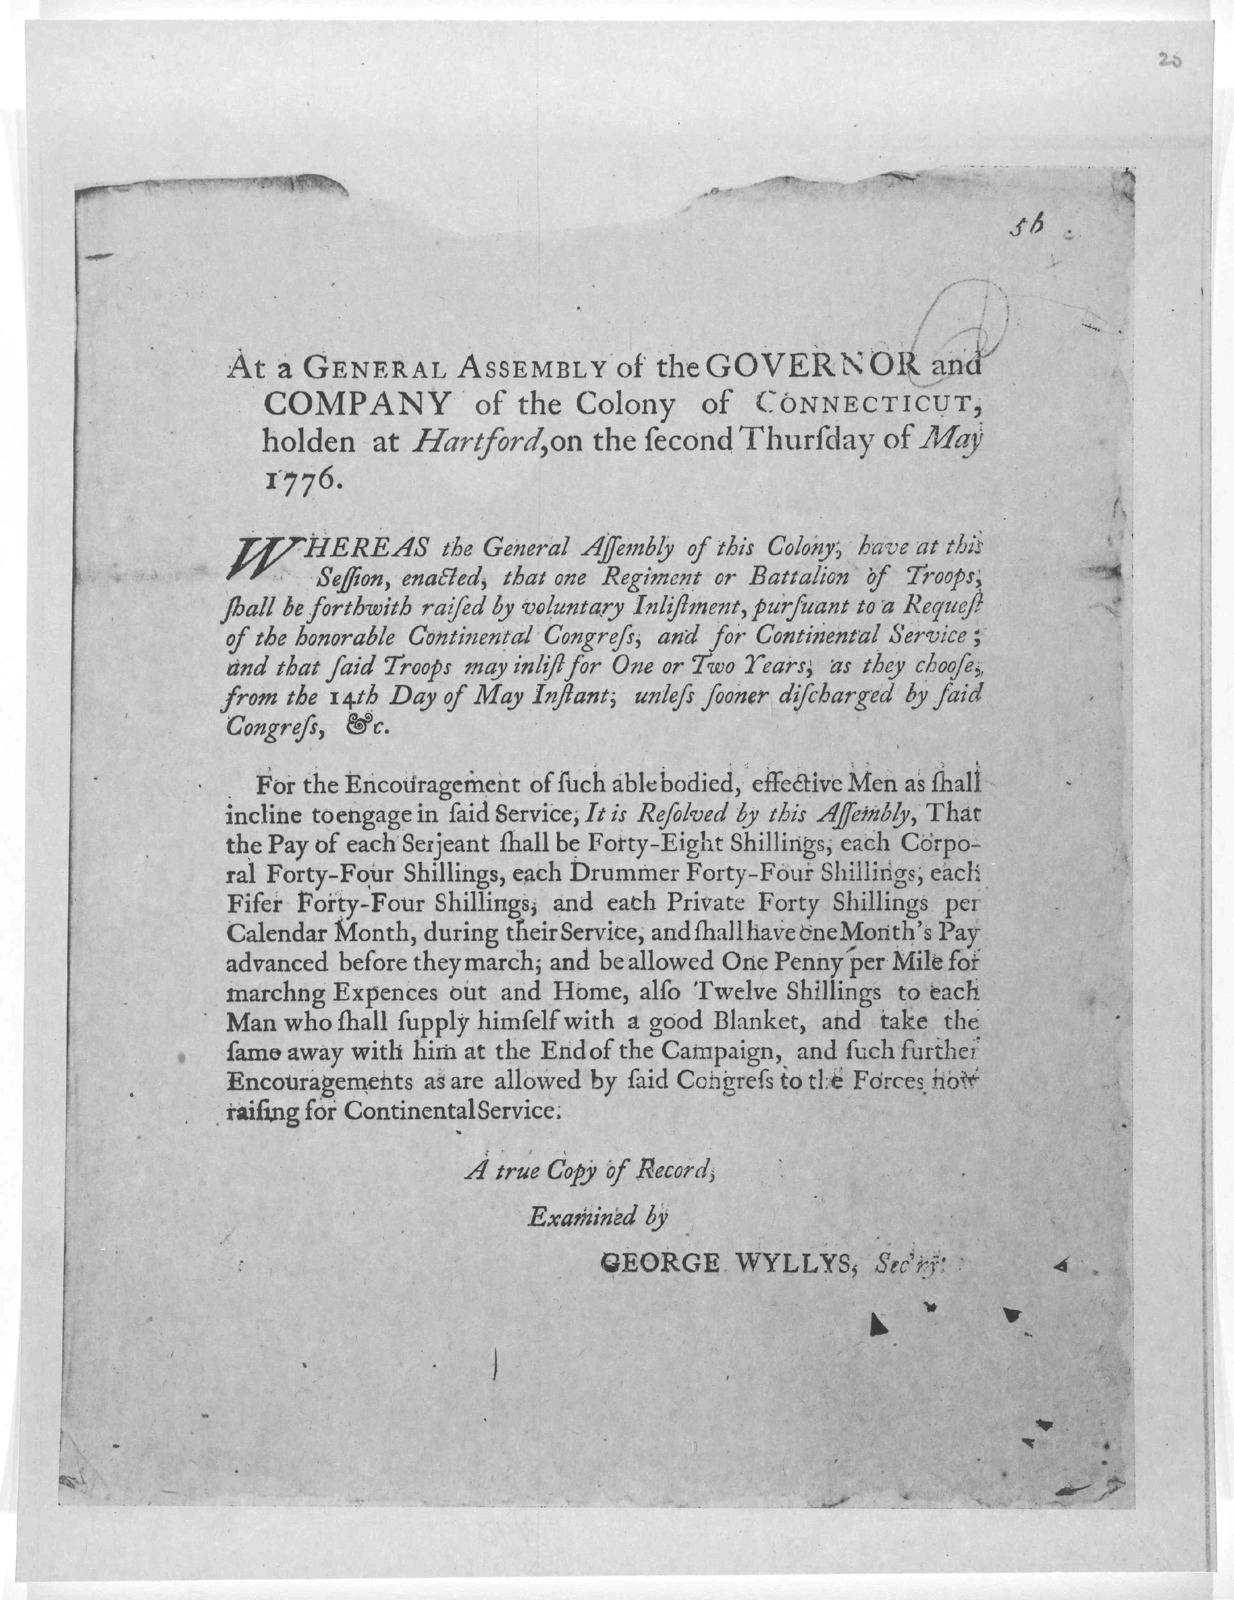 At a General Assembly of the Governor and company of the Colony of Connecticut, holden at Hartford, on the second Thursday of May, 1776. Whereas the General Assembly of this Colony, have at this session, enacted, that one regiment or battalion o